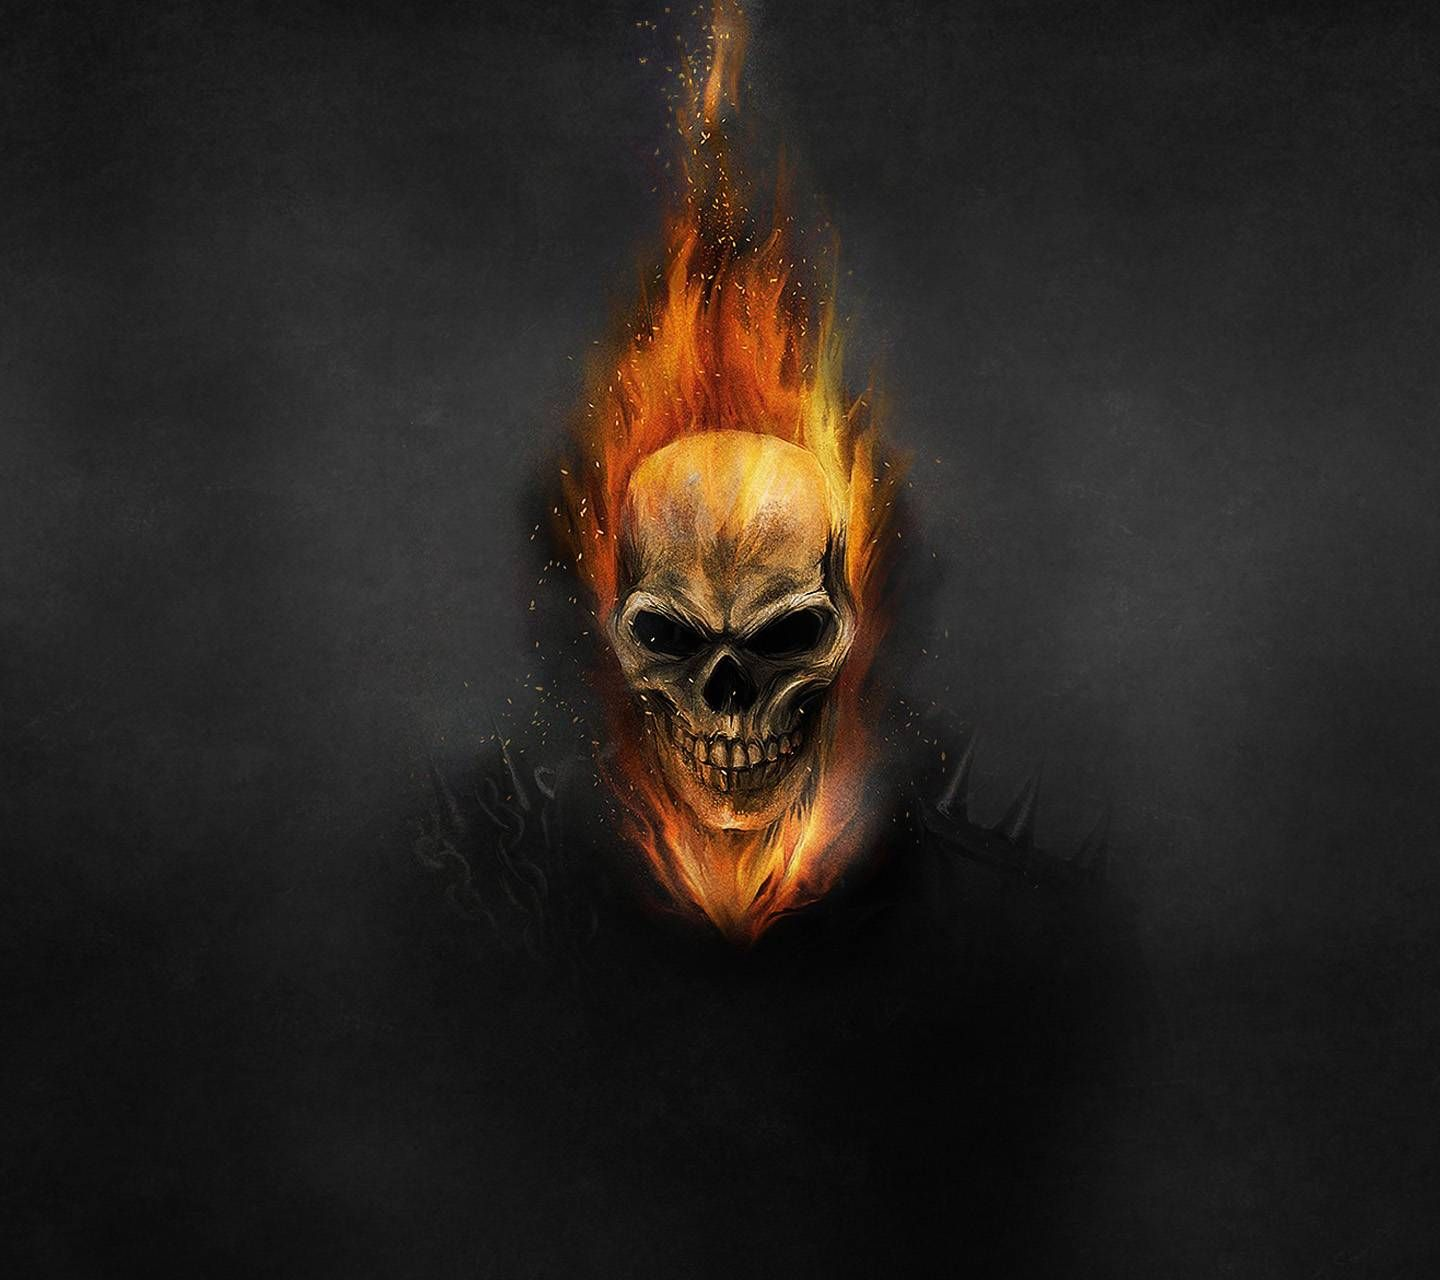 Download Skull Wallpaper By Lord Of Dark E1 Free On Zedge Now Browse Millions Of Popular Art Wal Ghost Rider Wallpaper Ghost Rider Ghost Rider Pictures